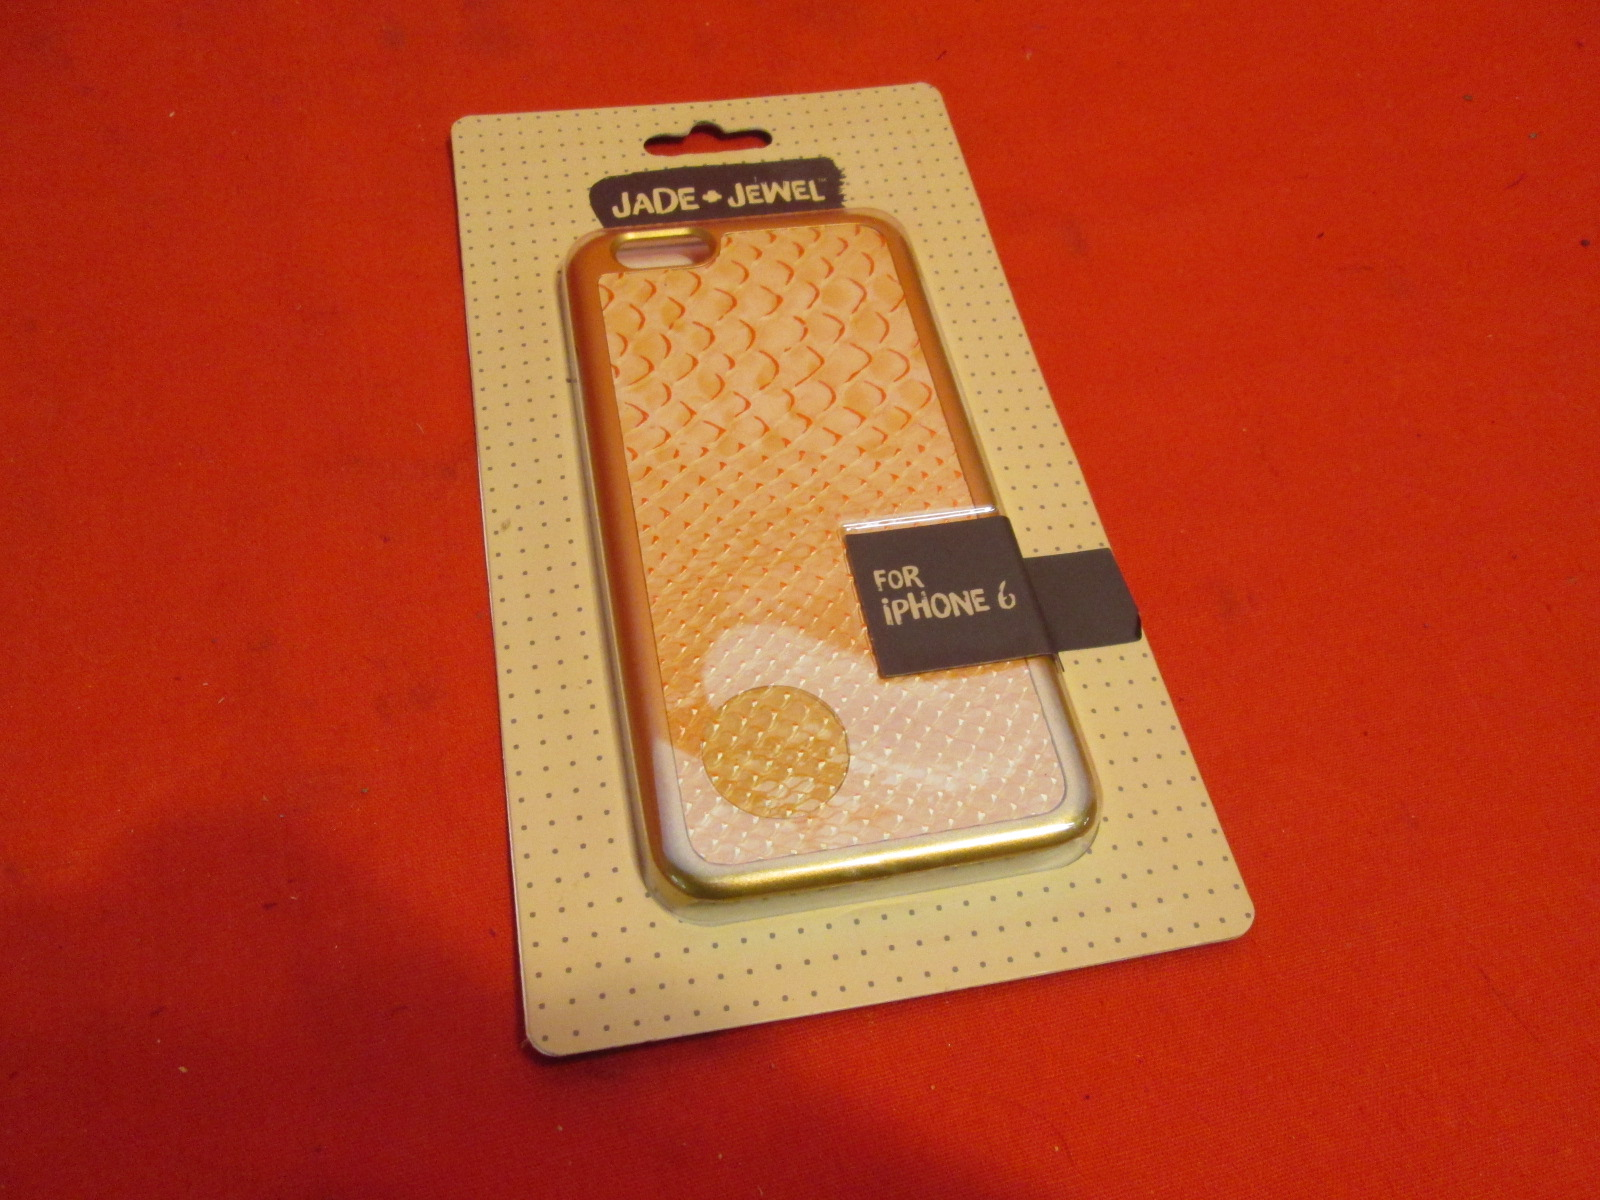 Jade & Jewel Phone Case For iPhone 6 Cover Gold Fitted CO8188